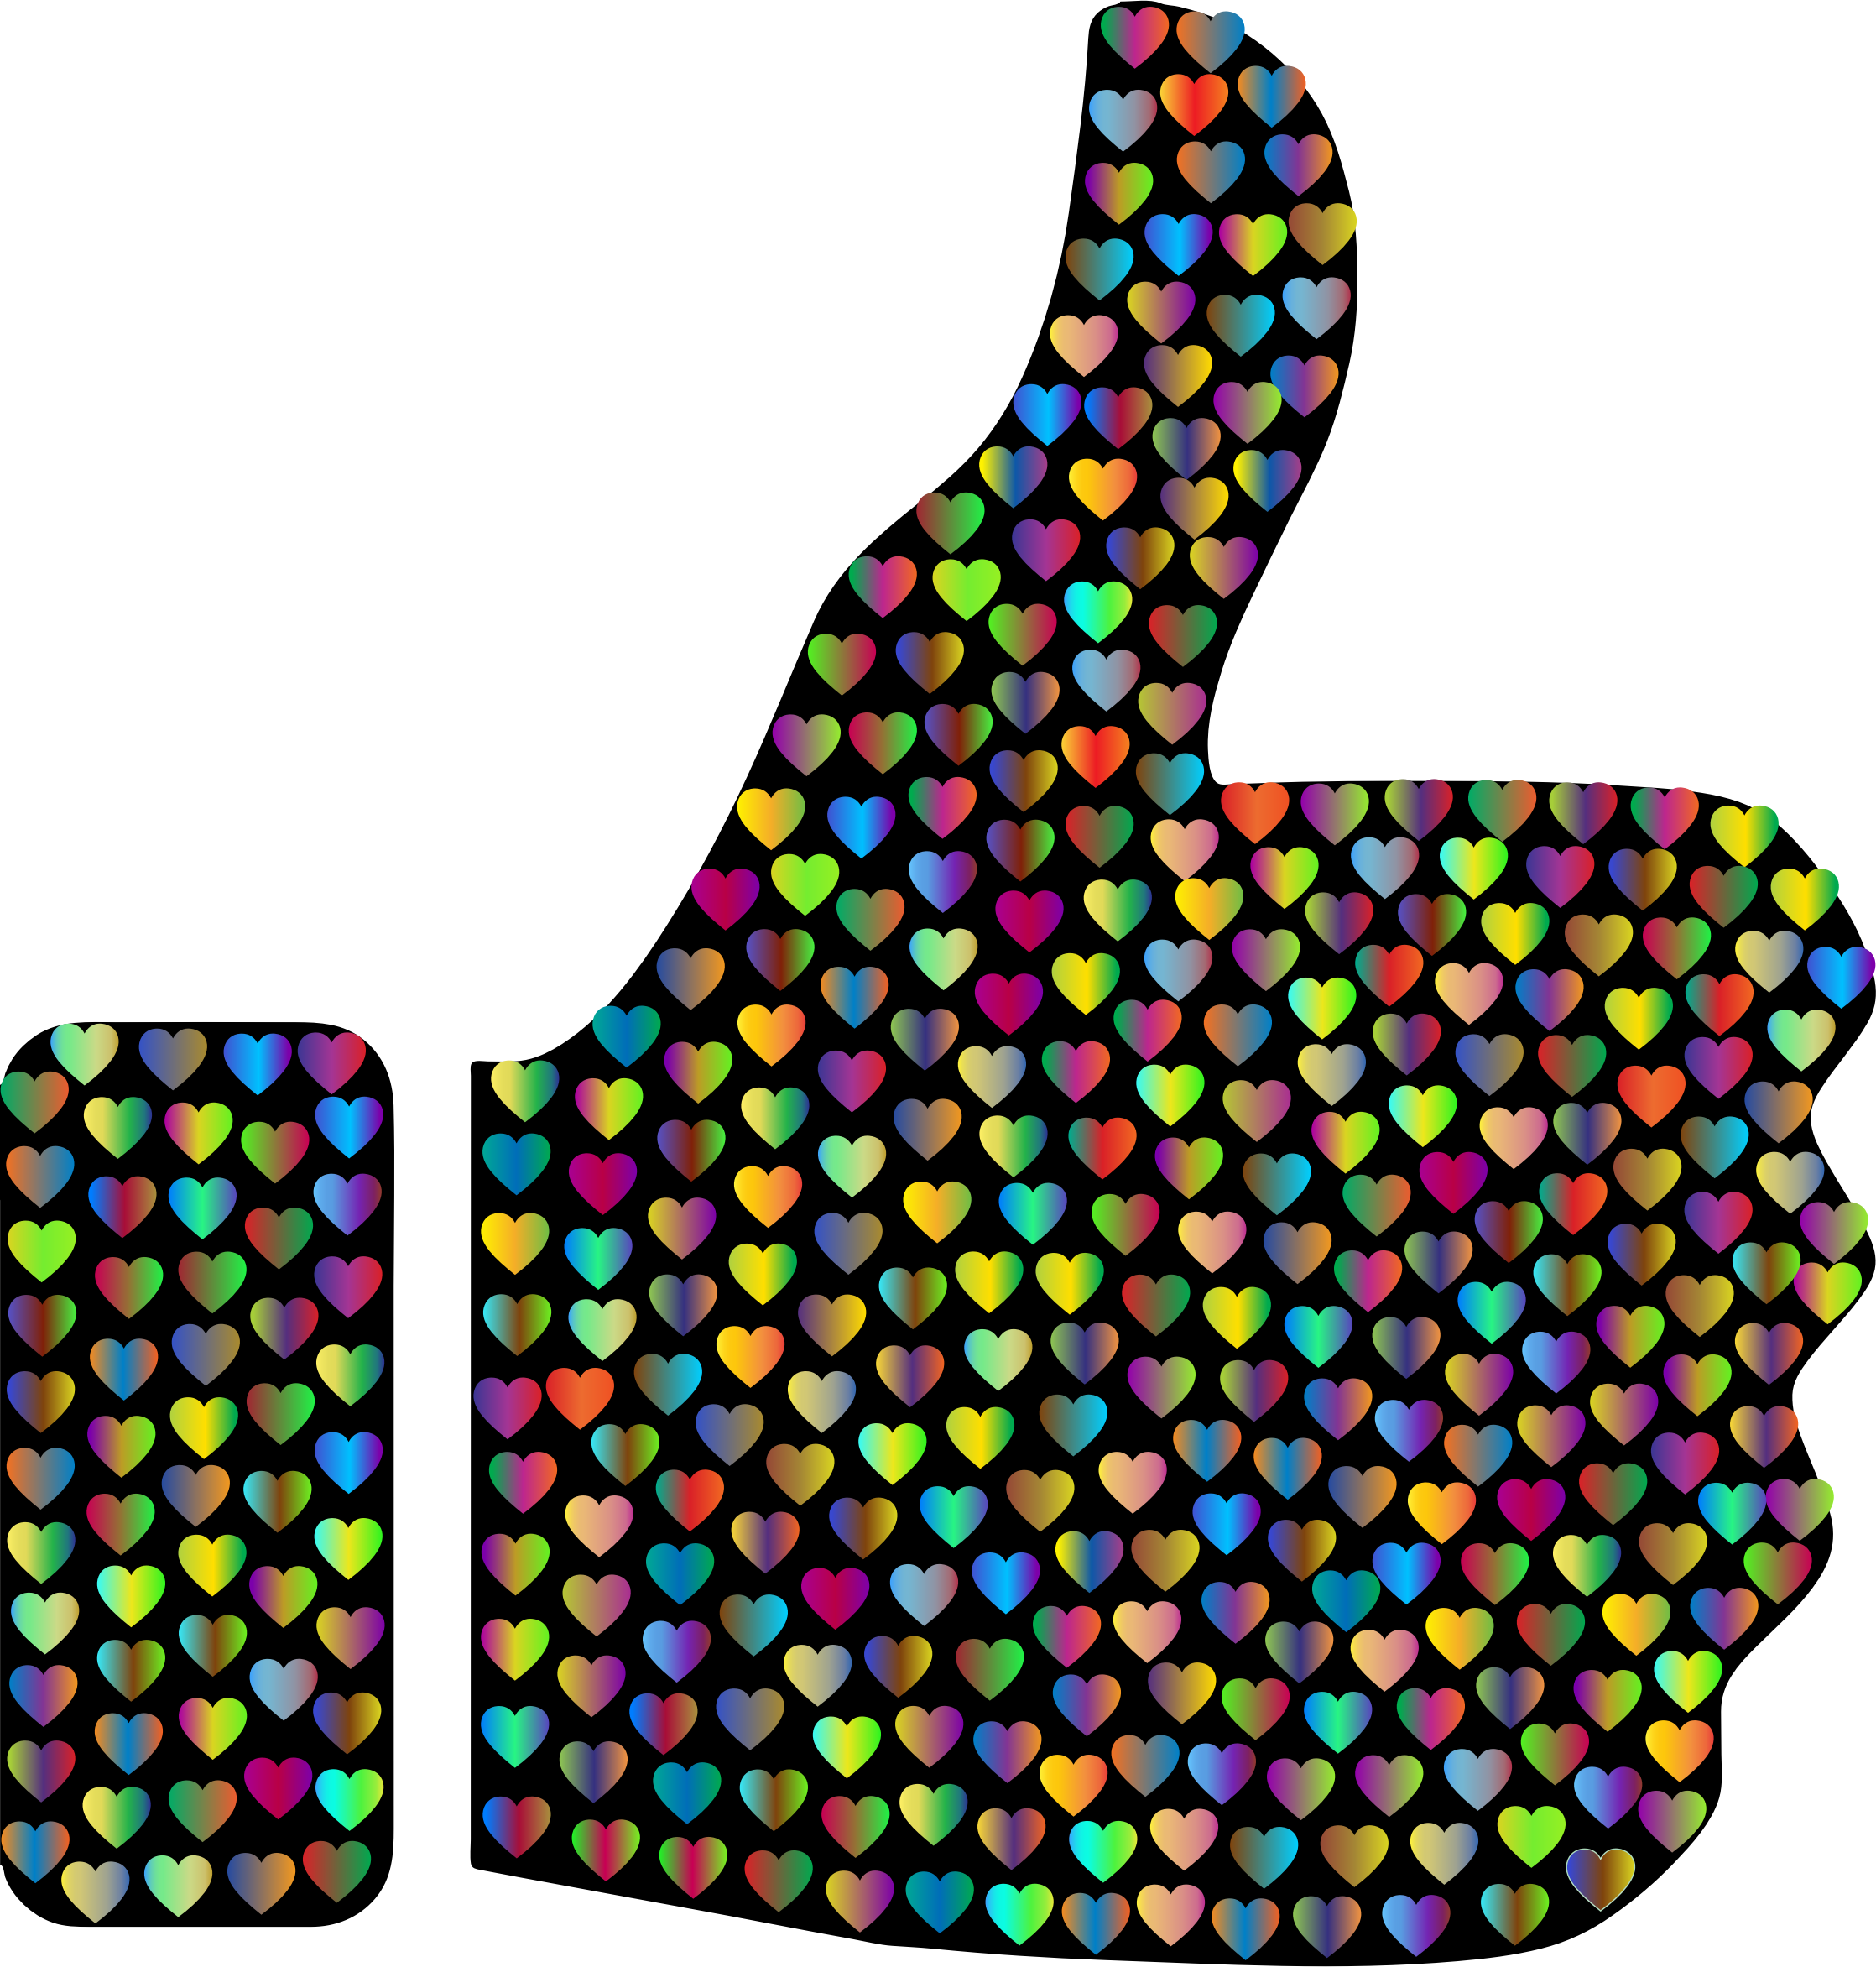 Prismatic Hearts Thumbs Up Silhouette 4 by GDJ